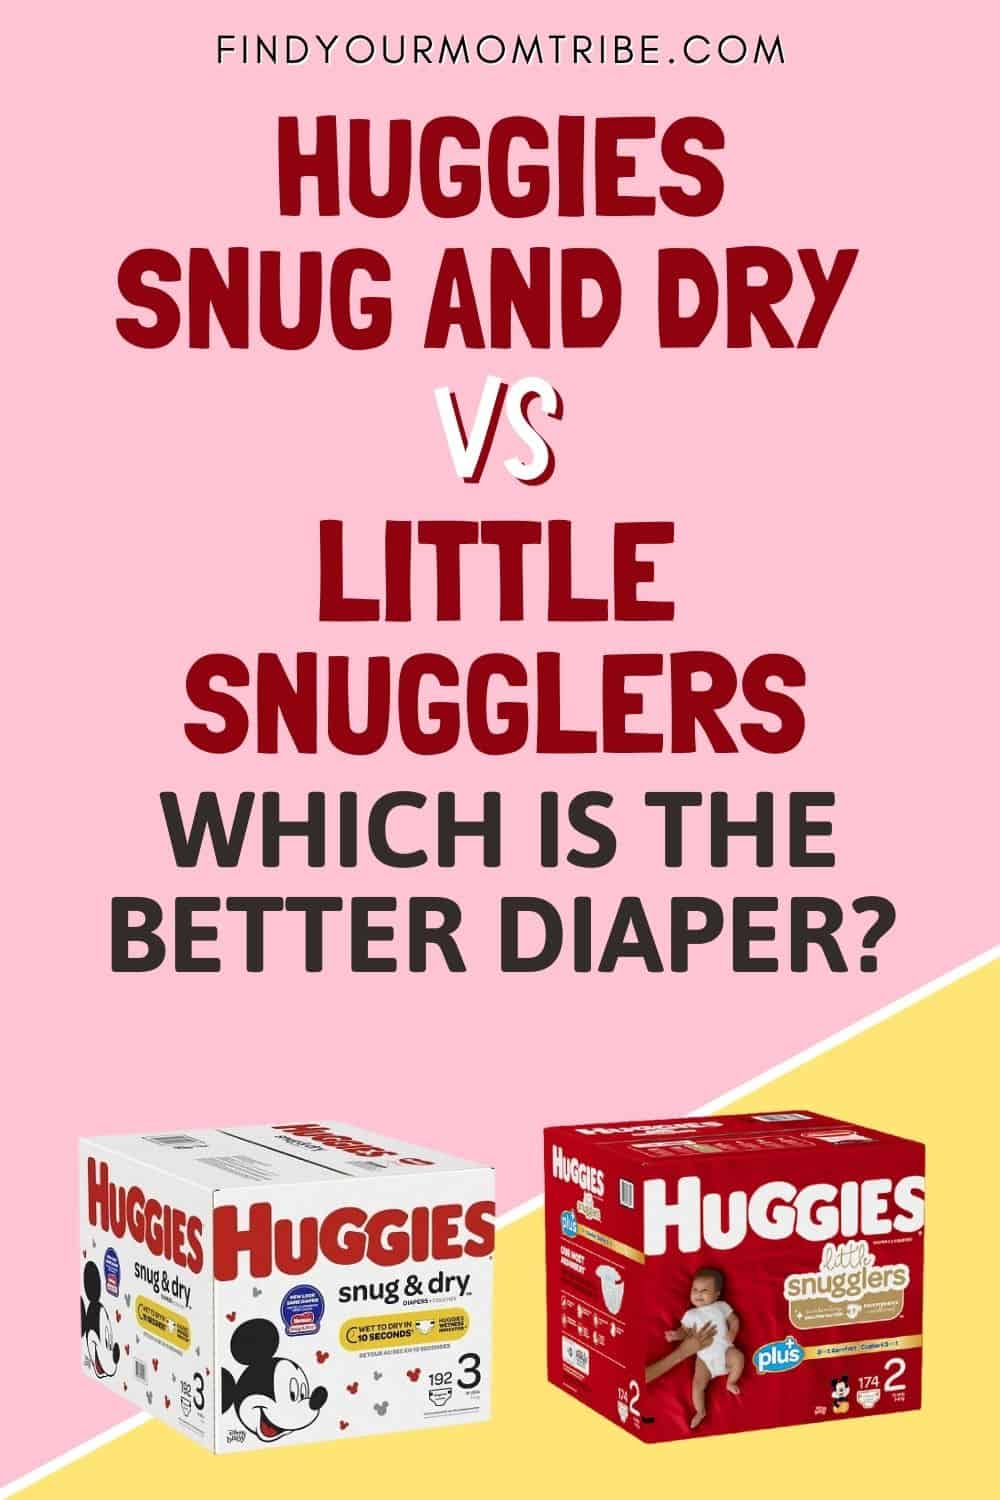 Huggies Snug And Dry VS Little Snugglers Which Is The Better Diaper Pinterest